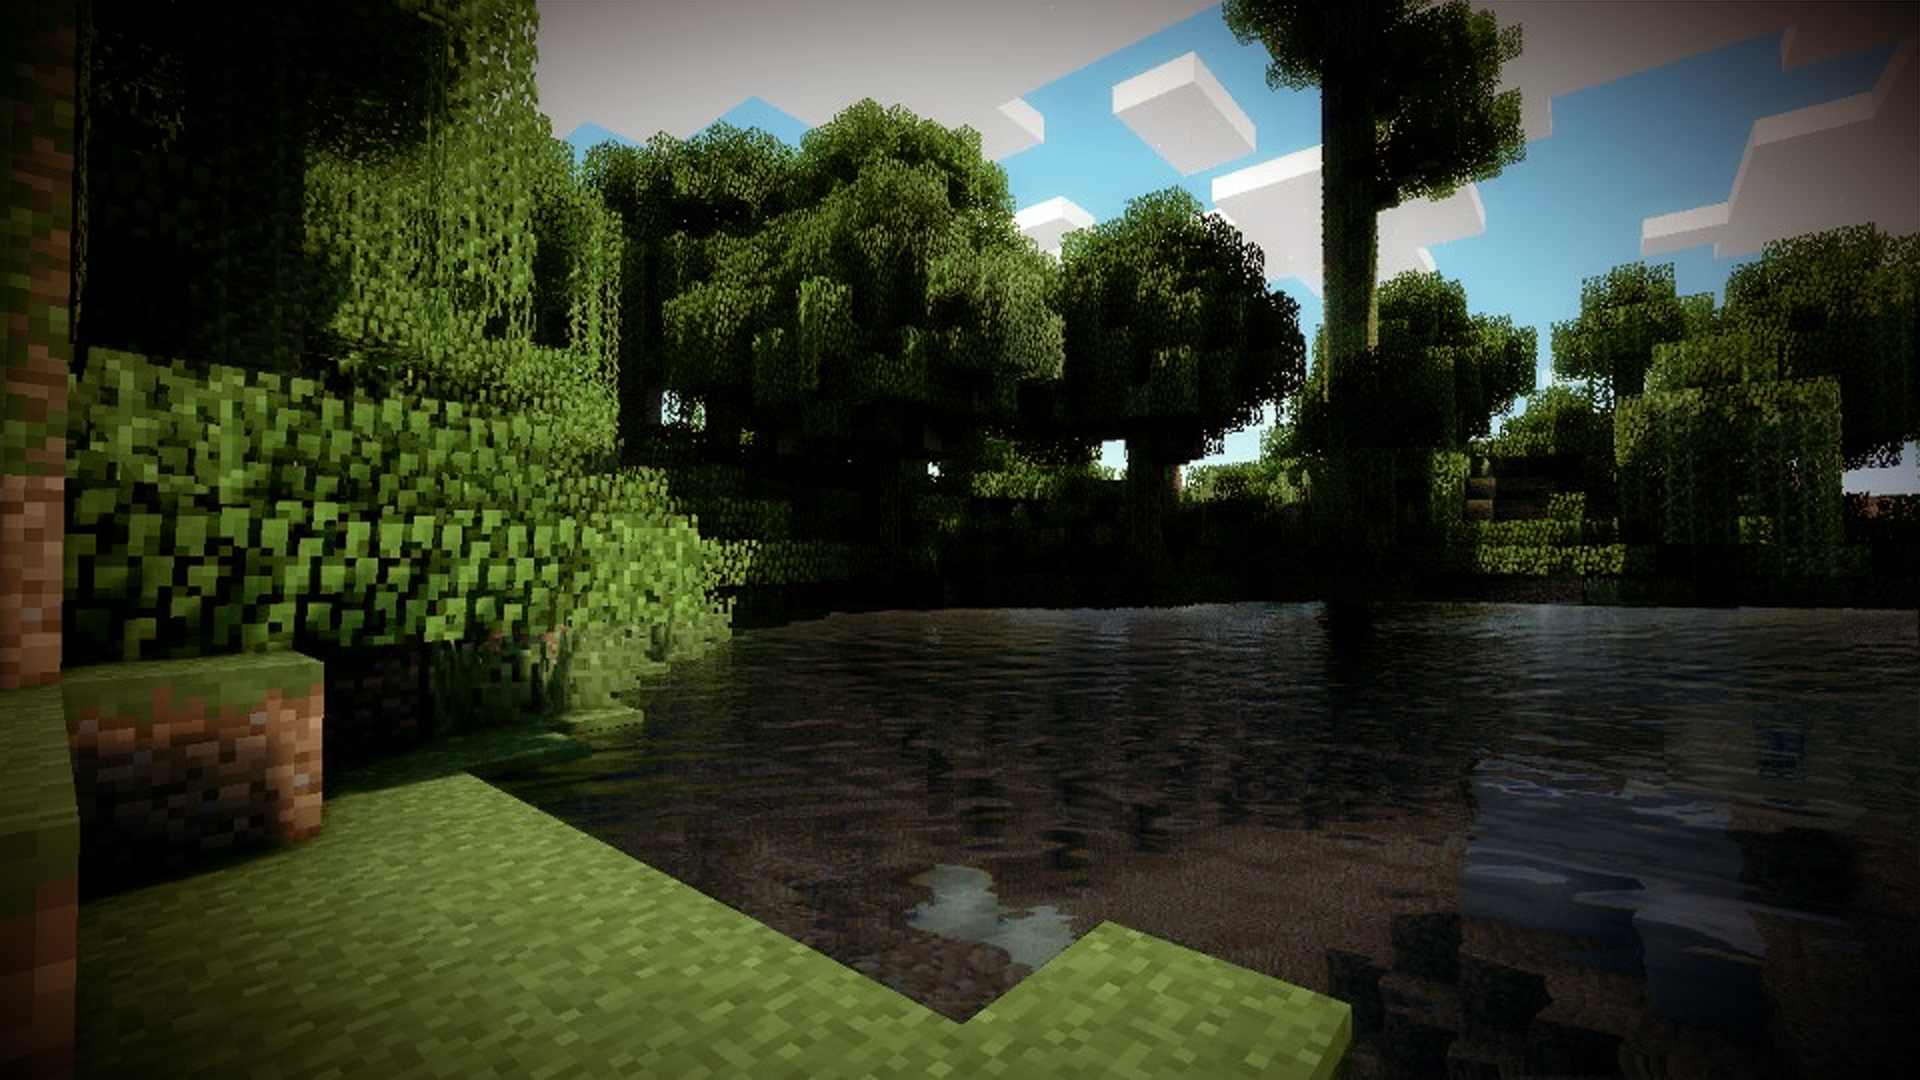 47+] Minecraft Wallpaper Mod on WallpaperSafari